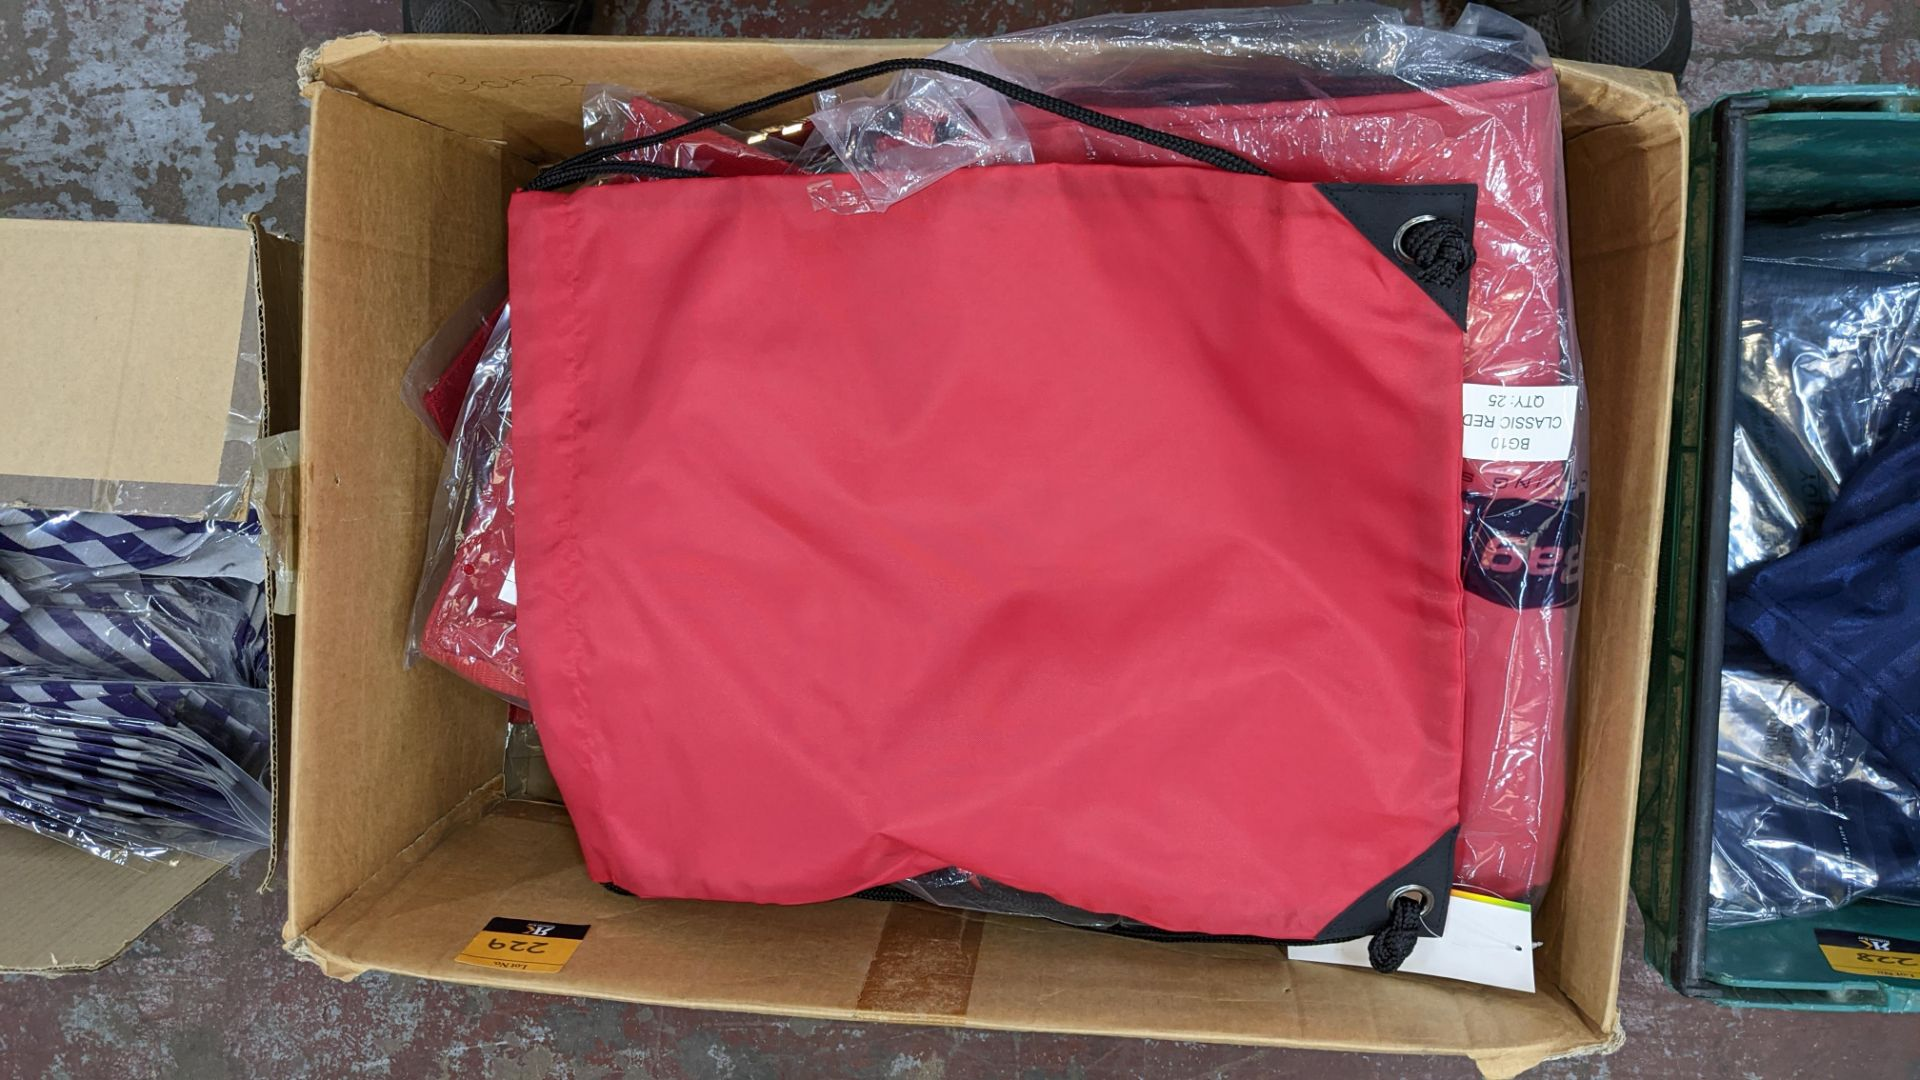 Approx 30 off Quadra school bags in red & blue with silver stripes - Image 4 of 4